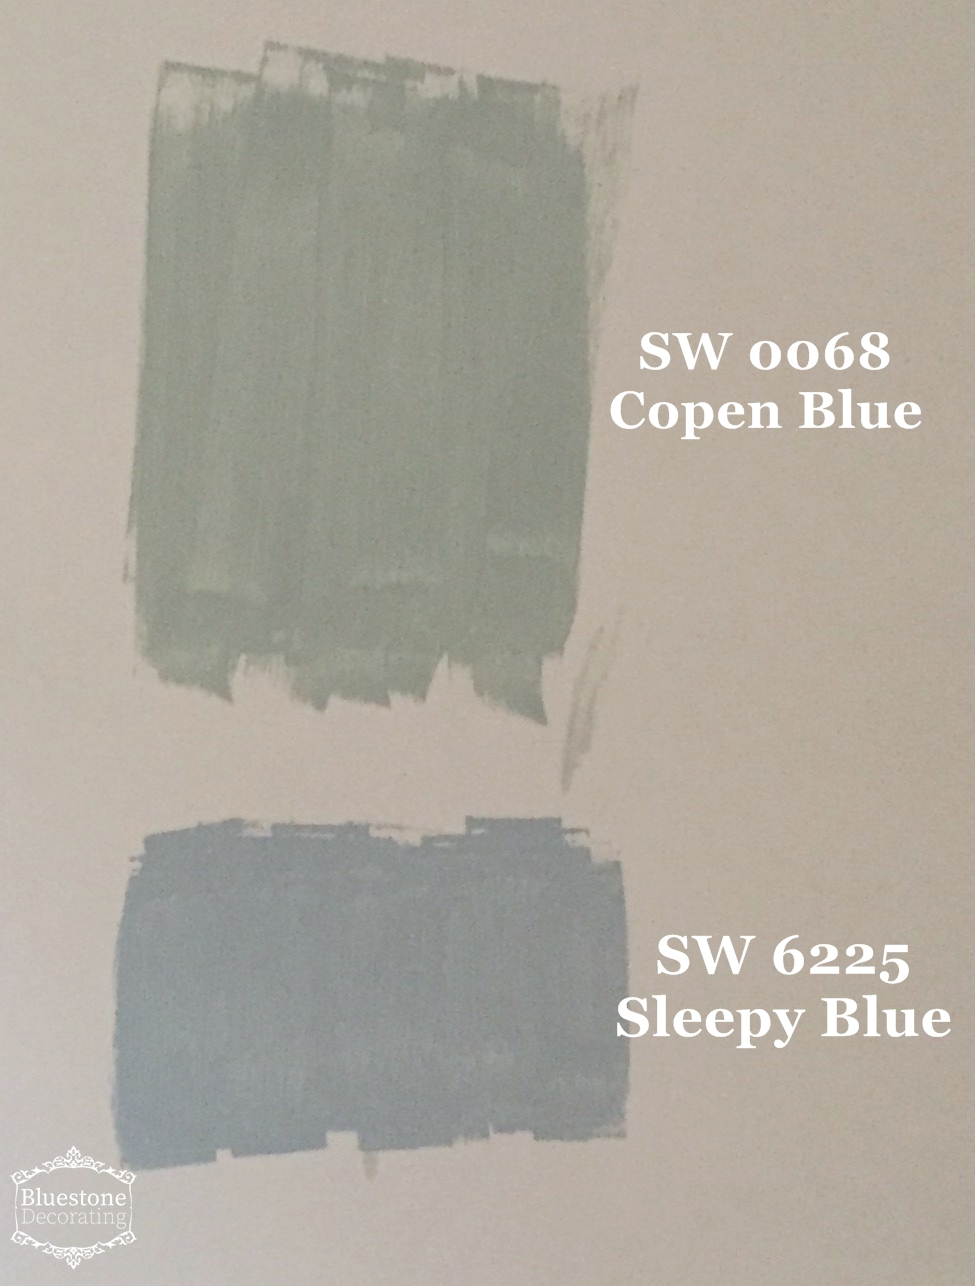 Color consultation before master bedroom test sherwin williams 0068 copen blue 6225 sleepy blue bluestone decorating by crystal ortiz